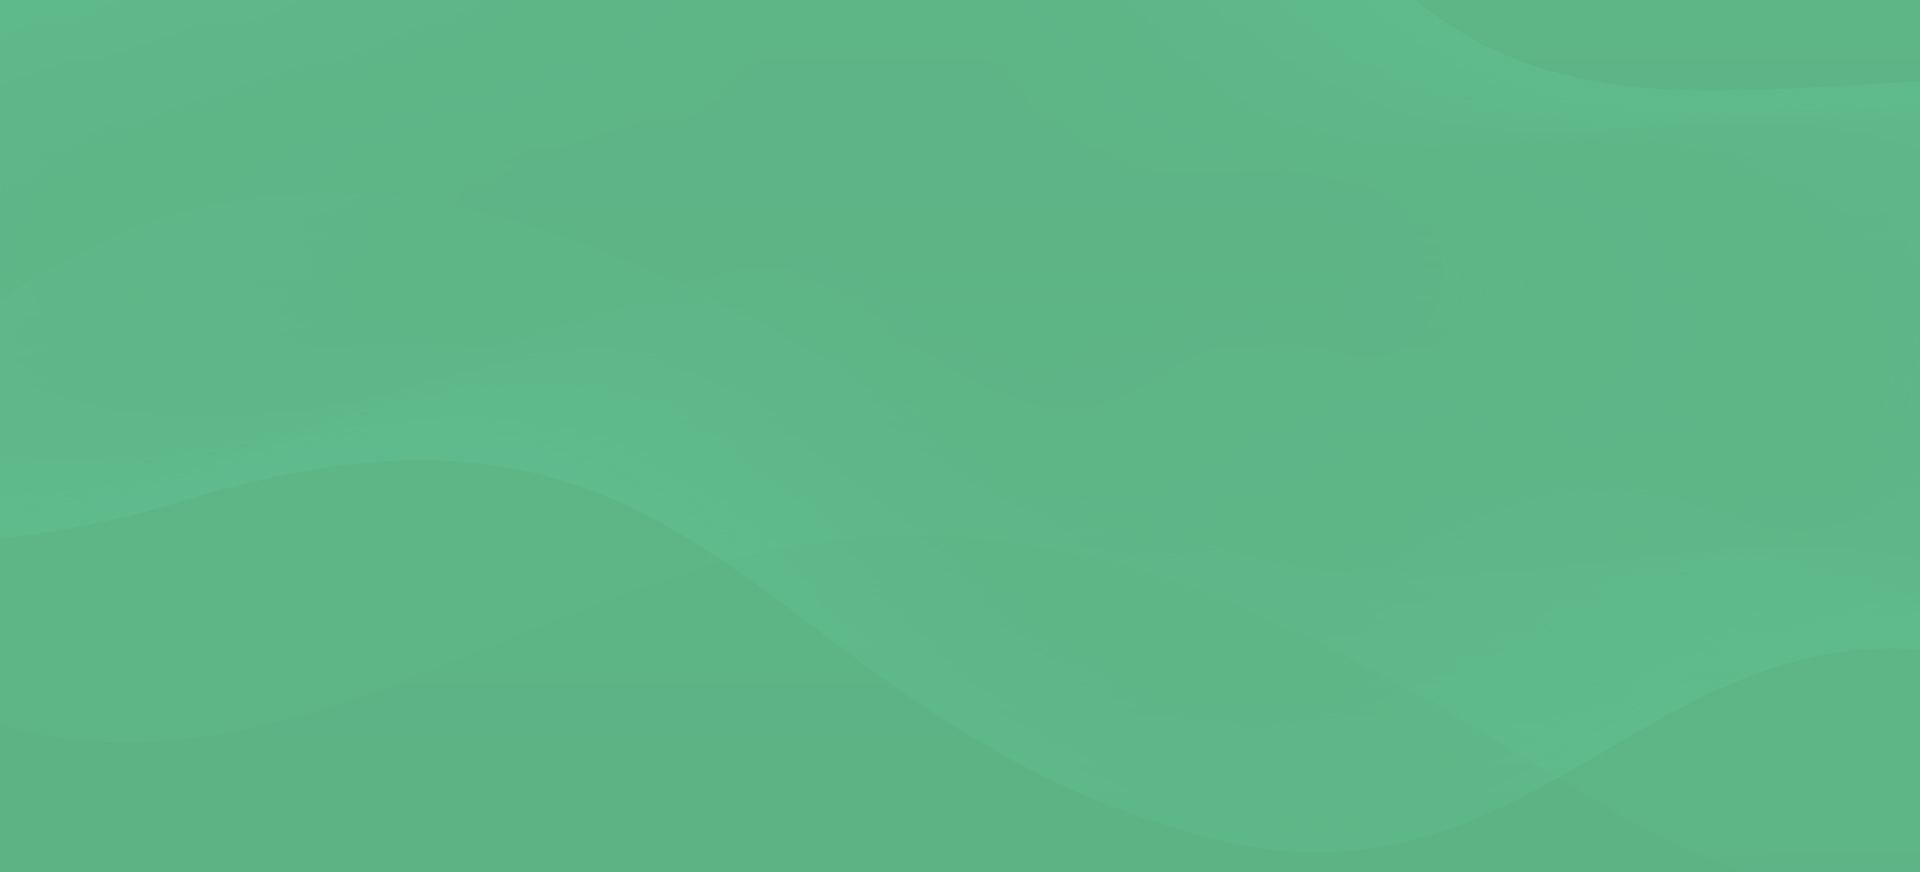 Hire Vue.js Developer on Hourly or Monthly Basis